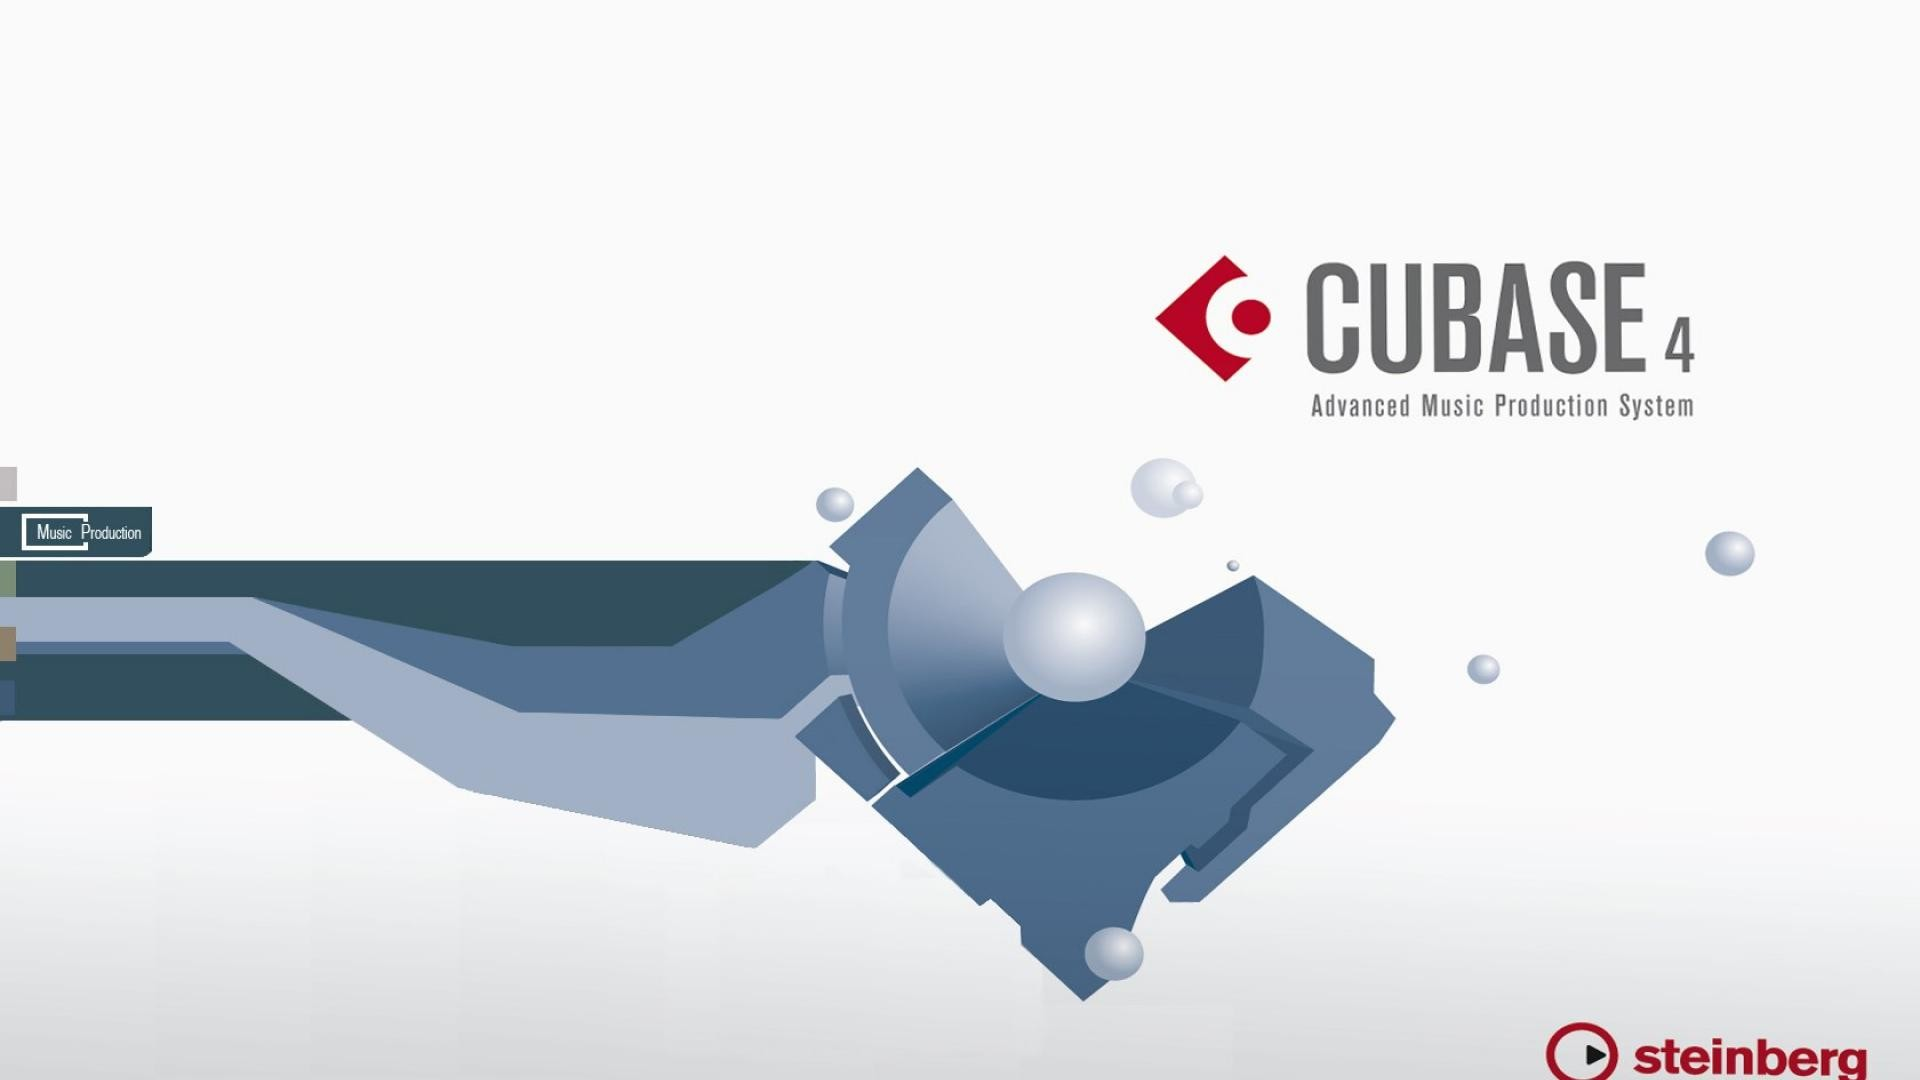 cubase music production system hd wallpaper – (#15114) – HQ . …